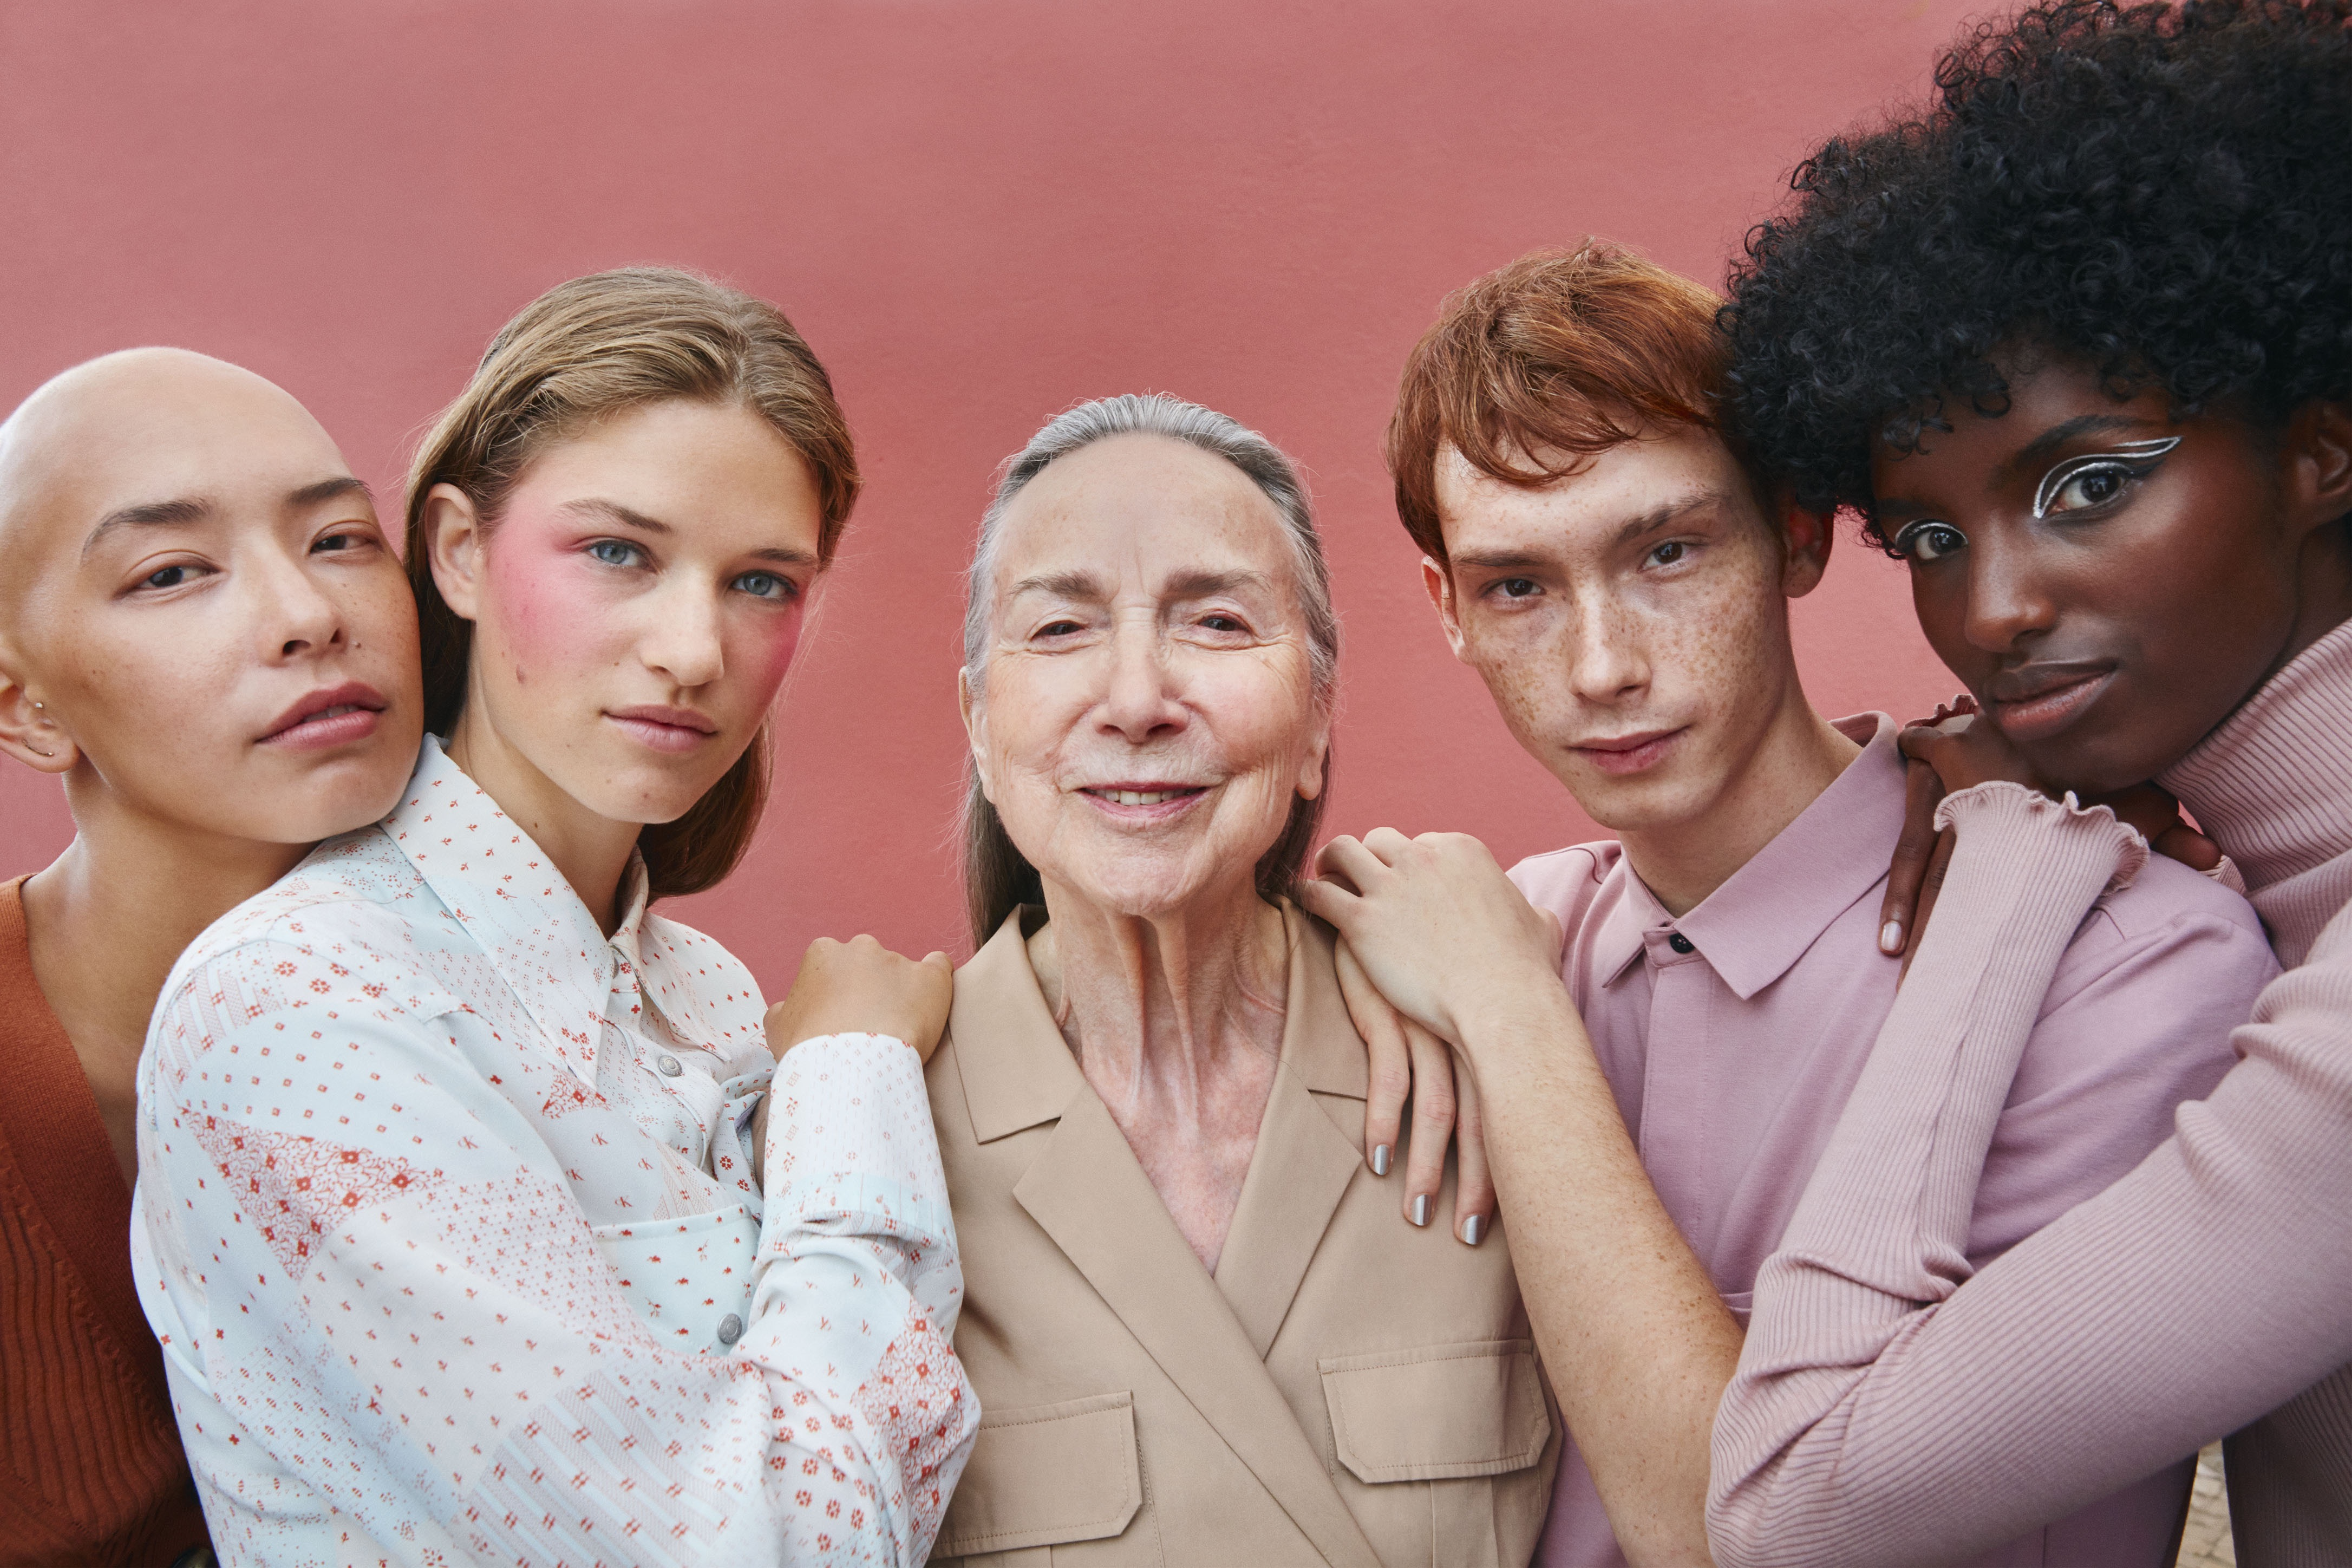 Grey Introduces Zalando's 'Free to Be' Campaign, Celebrating Freethinkers and Self-Expression